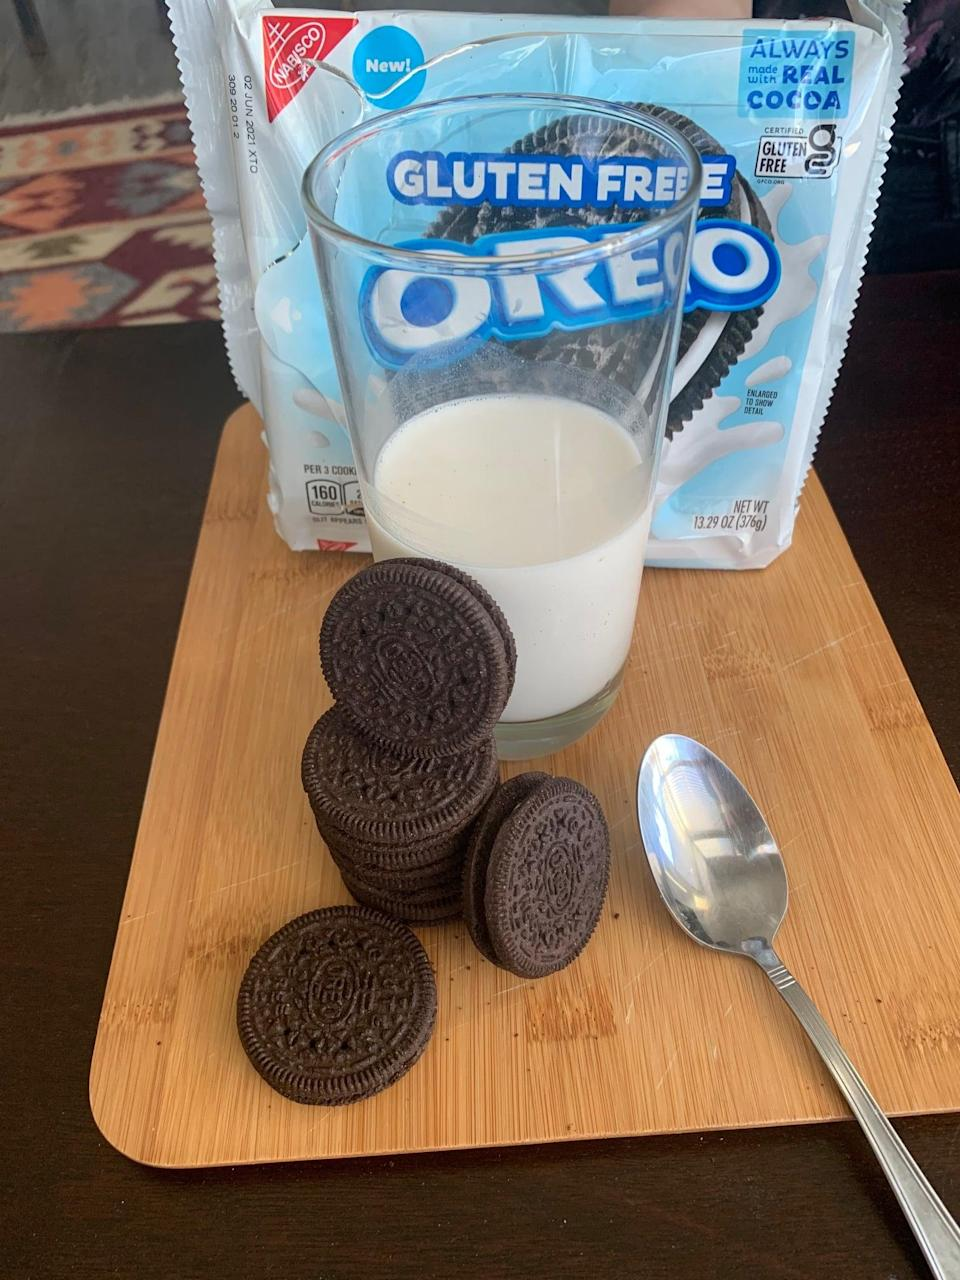 <p>Eating a dry Oreo and eating one that's been soaked in milk for <em>just</em> the right amount of time are two completely different experiences, and I decided it'd be irresponsible of me if I didn't try the gluten-free version both ways. After giving the cookie a decent soak, my opinion shot from a 10/10 to an 11/10. Needless to say, I will definitely be enjoying the rest of these with a cool glass of milk.</p>